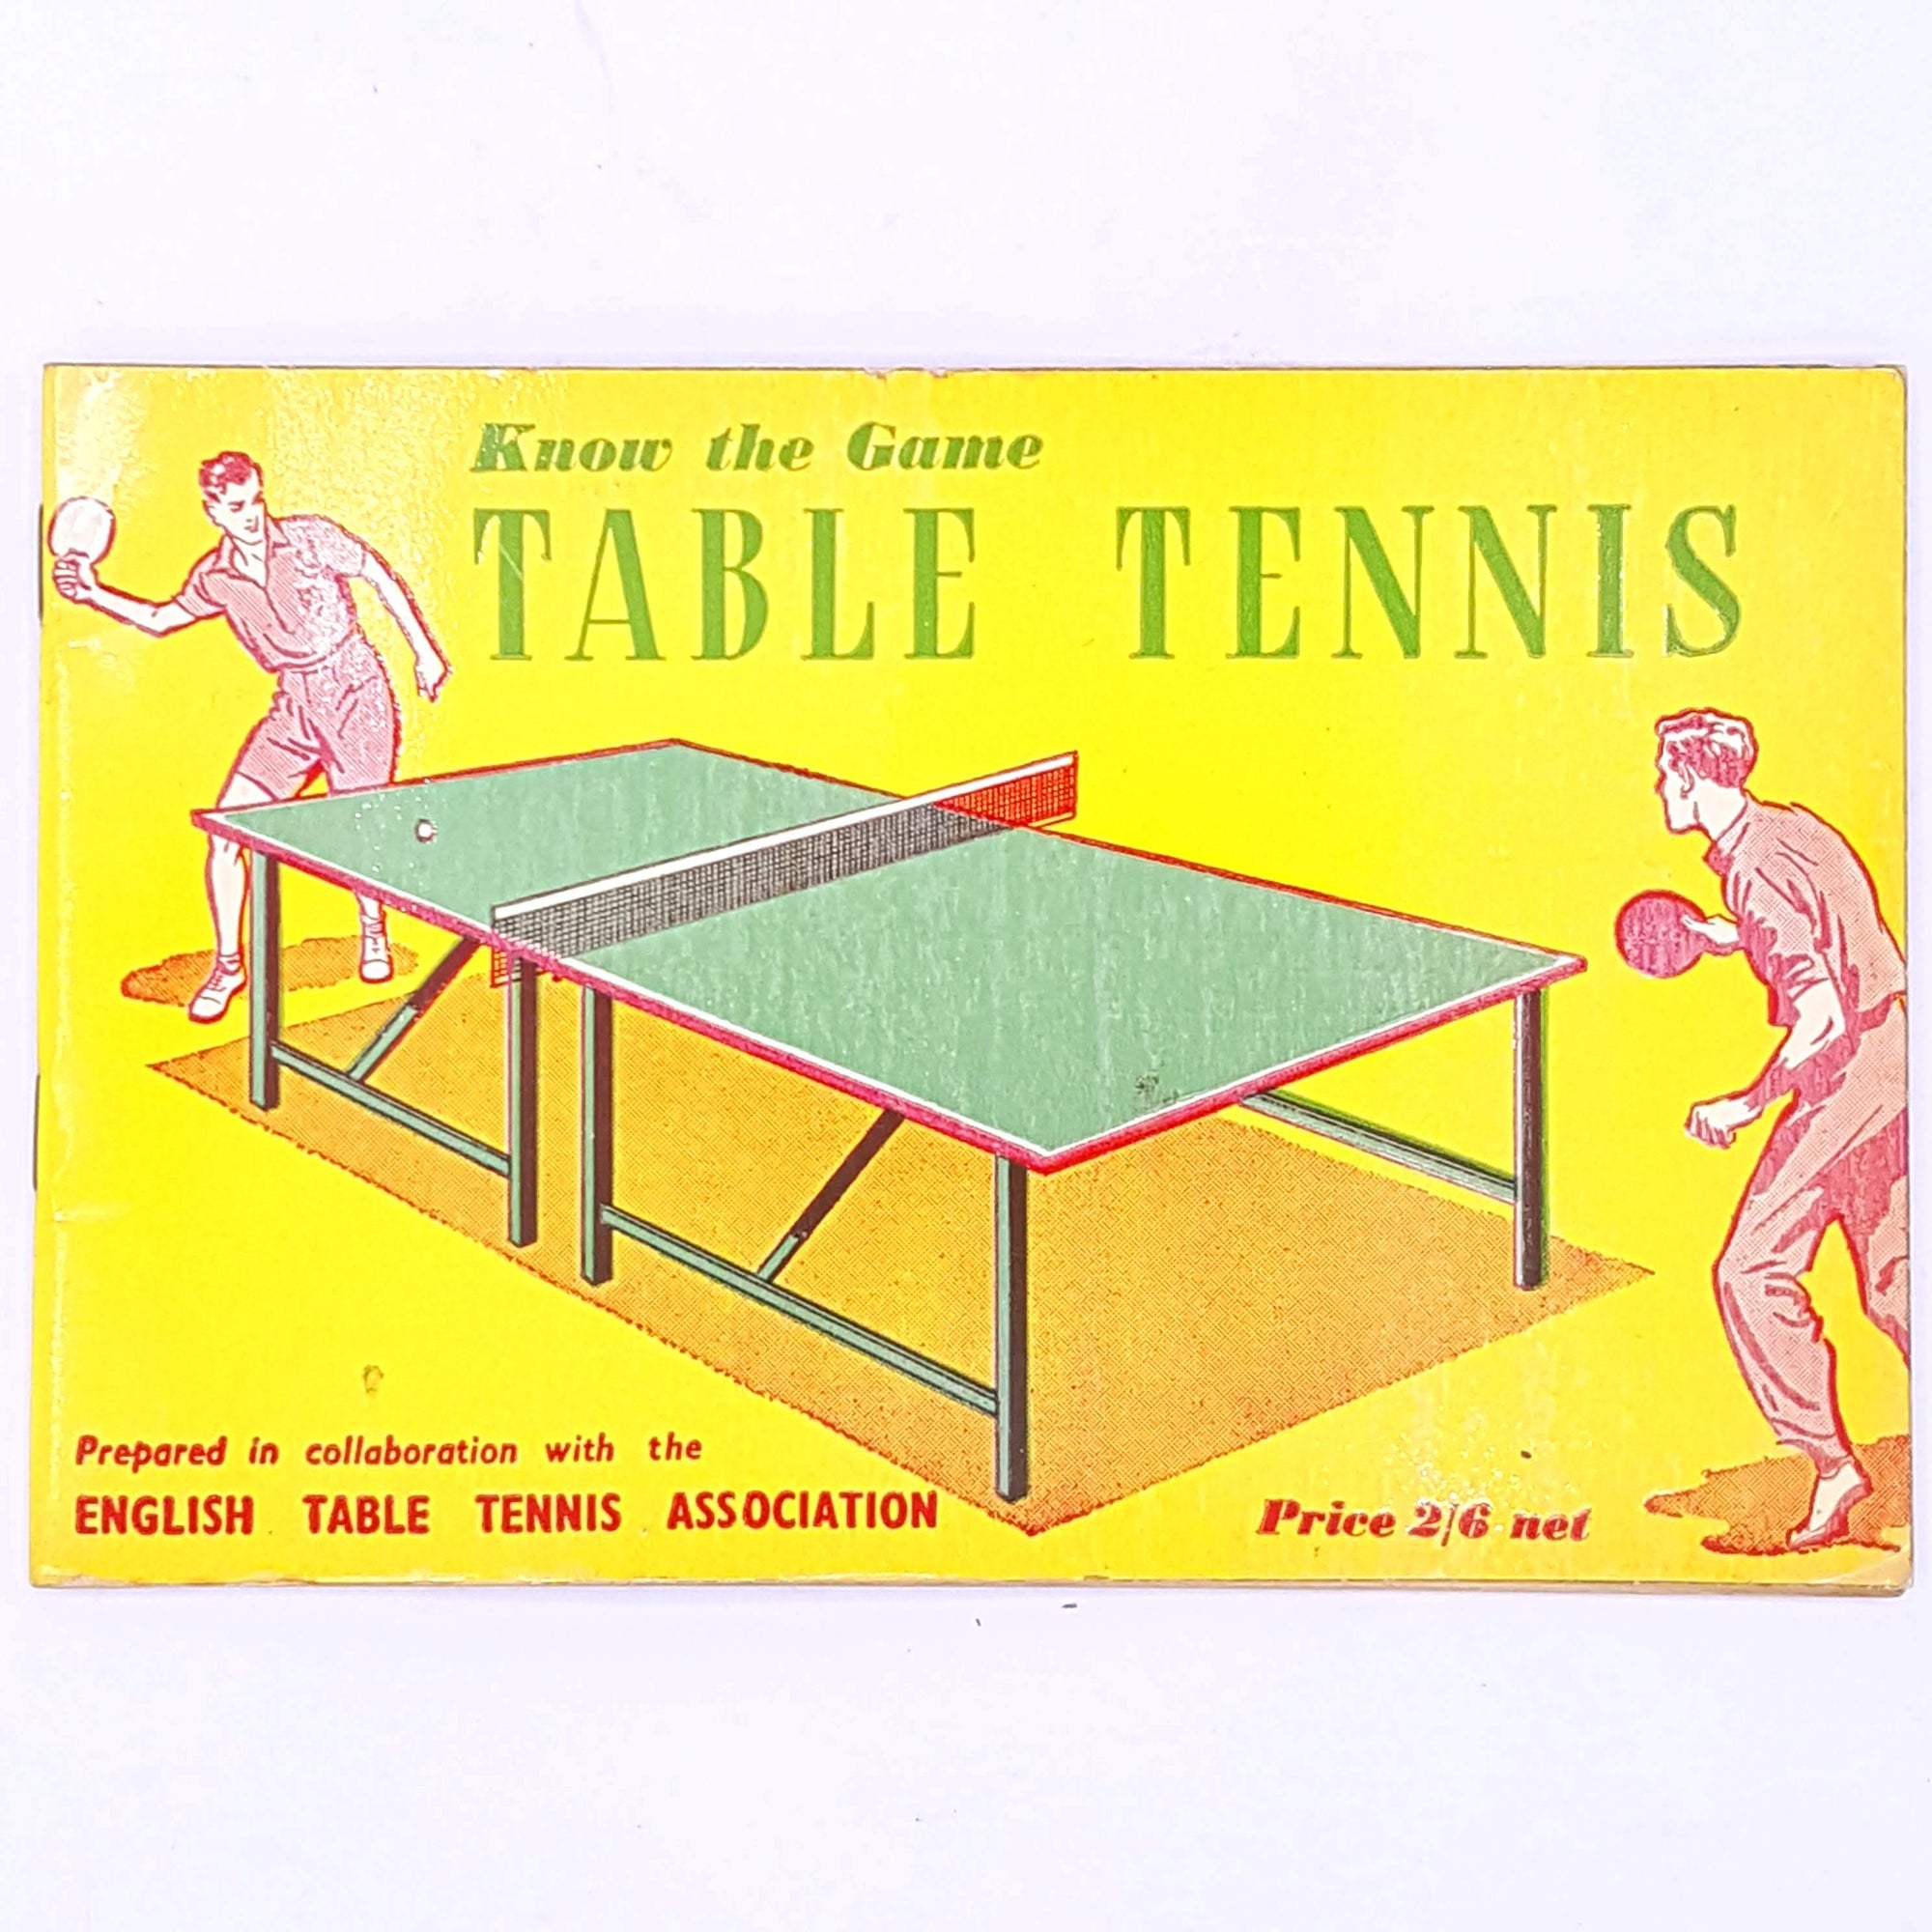 country-house-library-thrift-know-the-game-table-tennis-ball-games-sport-skills-hobbies-antique-vintage-books-old-patterned-decorative-classic-